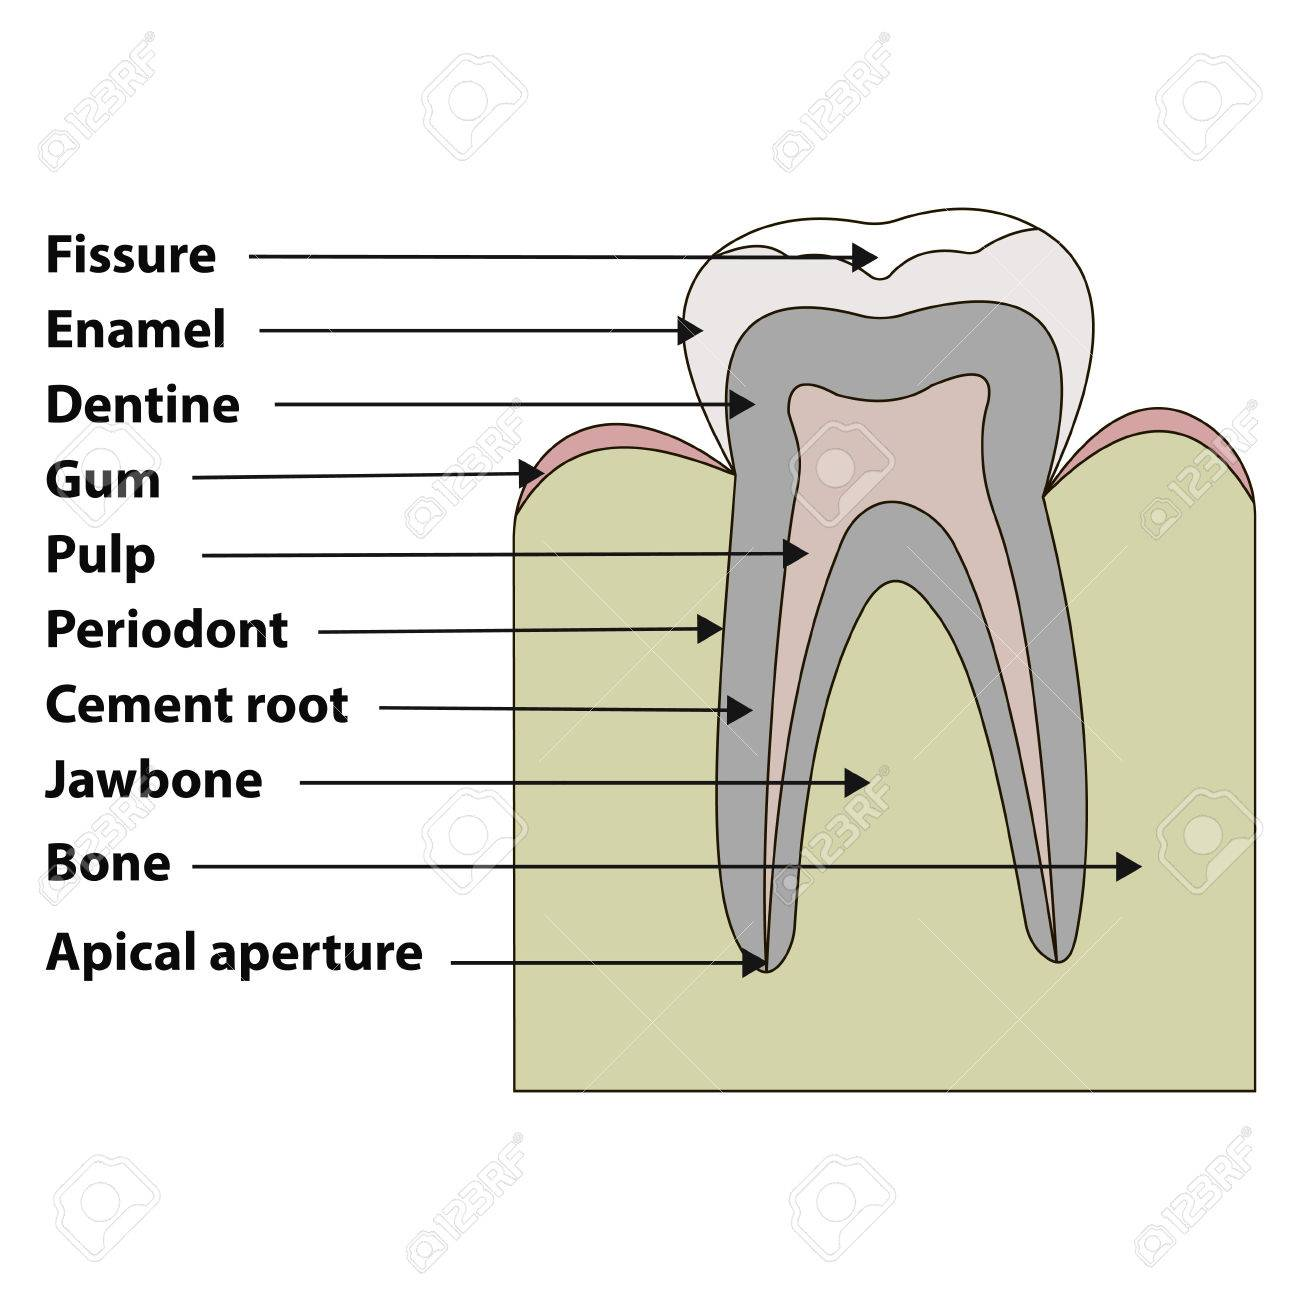 Anatomical structure of the tooth fissures enamel dentin gums anatomical structure of the tooth fissures enamel dentin gums pulpa periodont biocorpaavc Image collections